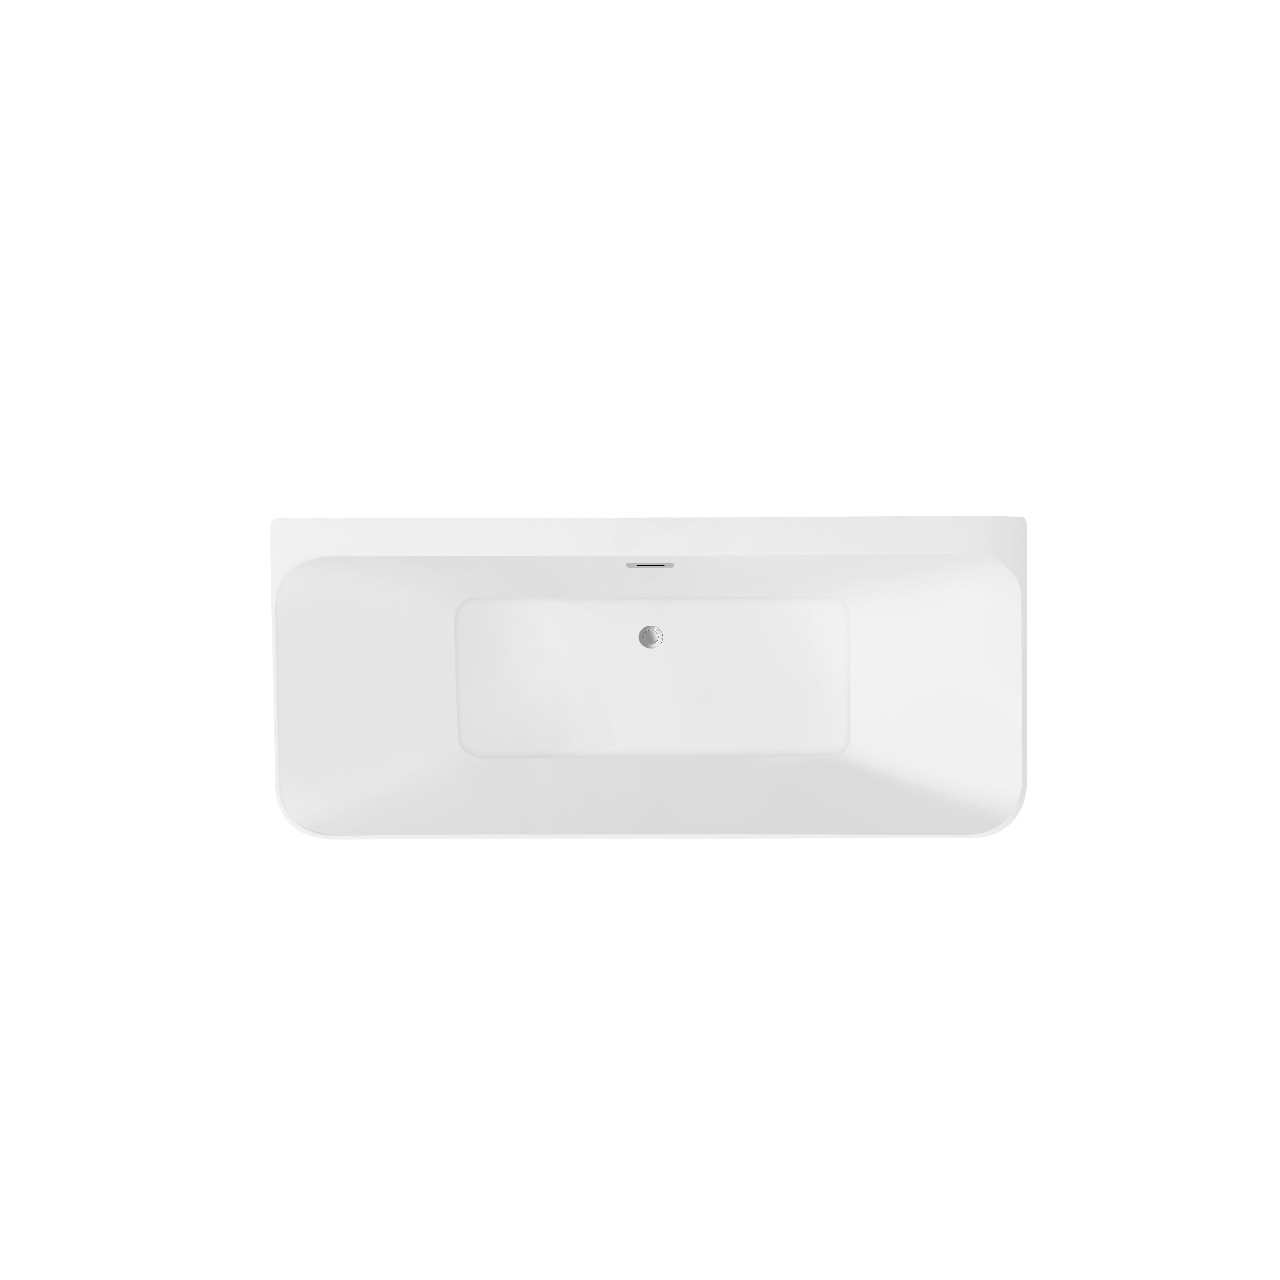 Palermo 1500mm x 740mm Square Double Ended Freestanding Back to Wall Bath